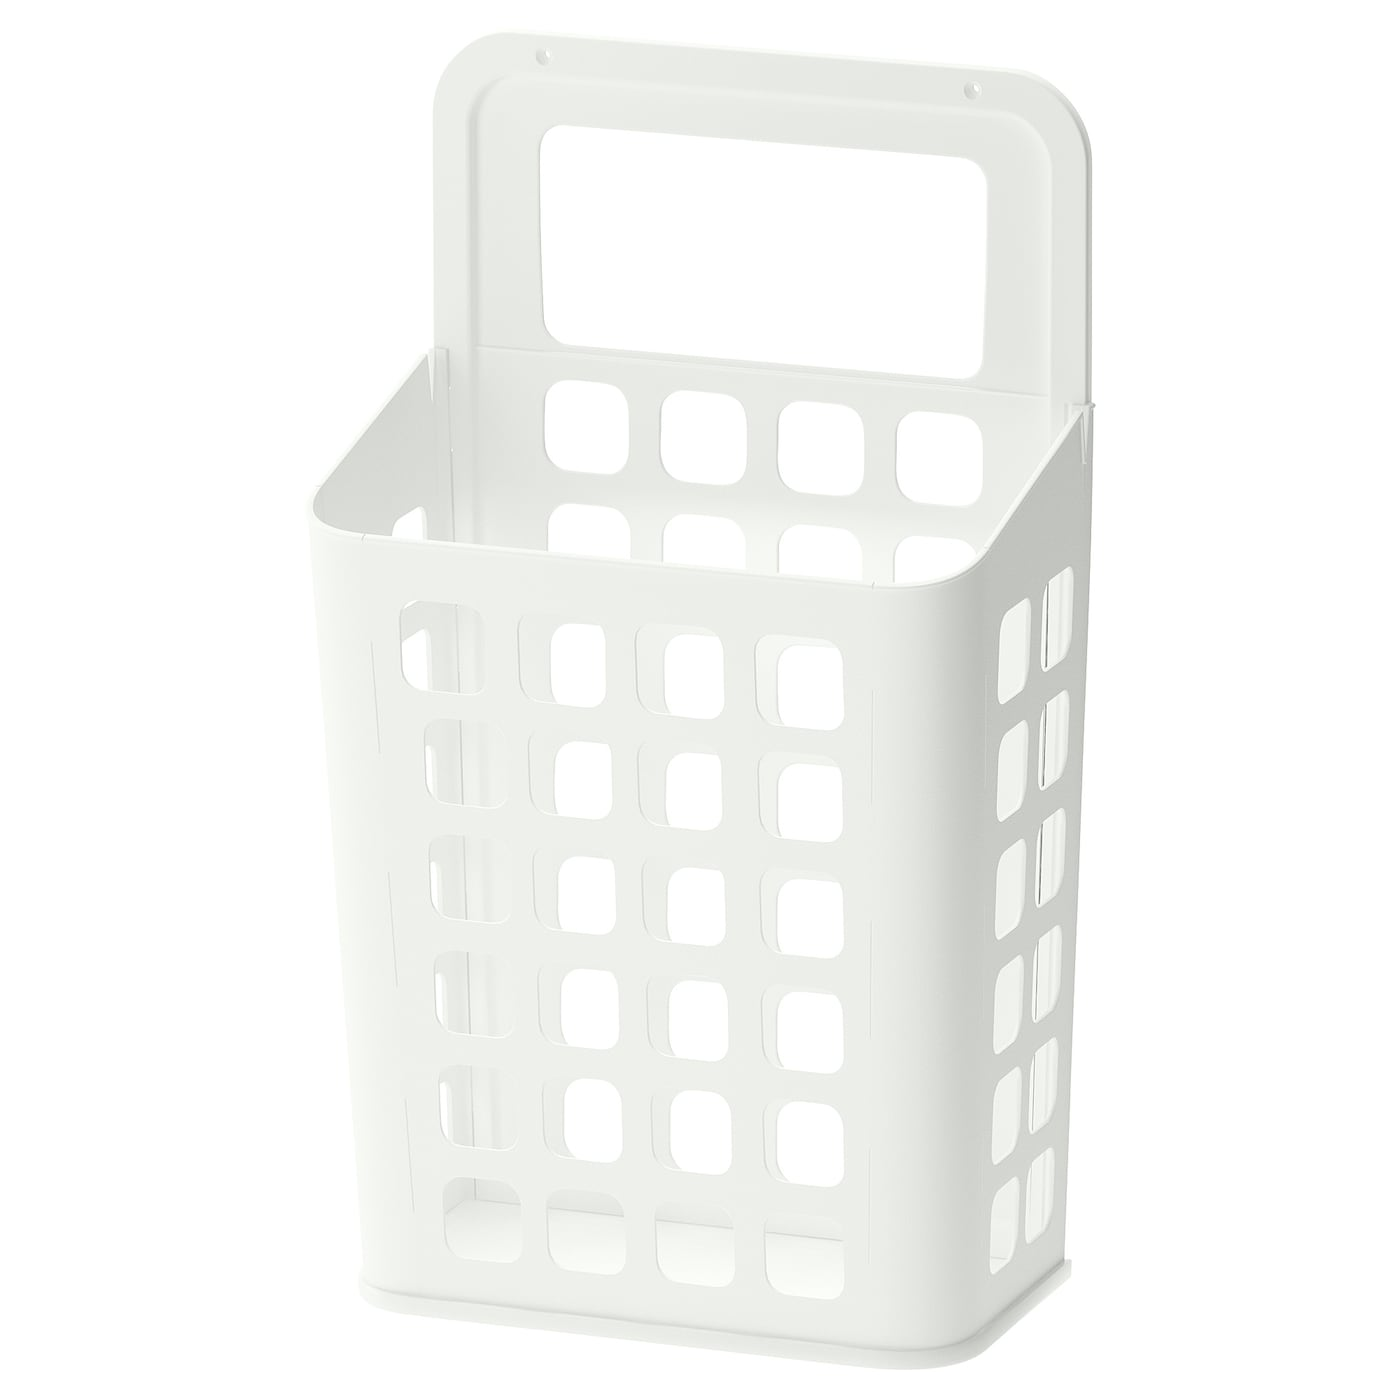 IKEA VARIERA waste bin Rounded corners for easy cleaning.